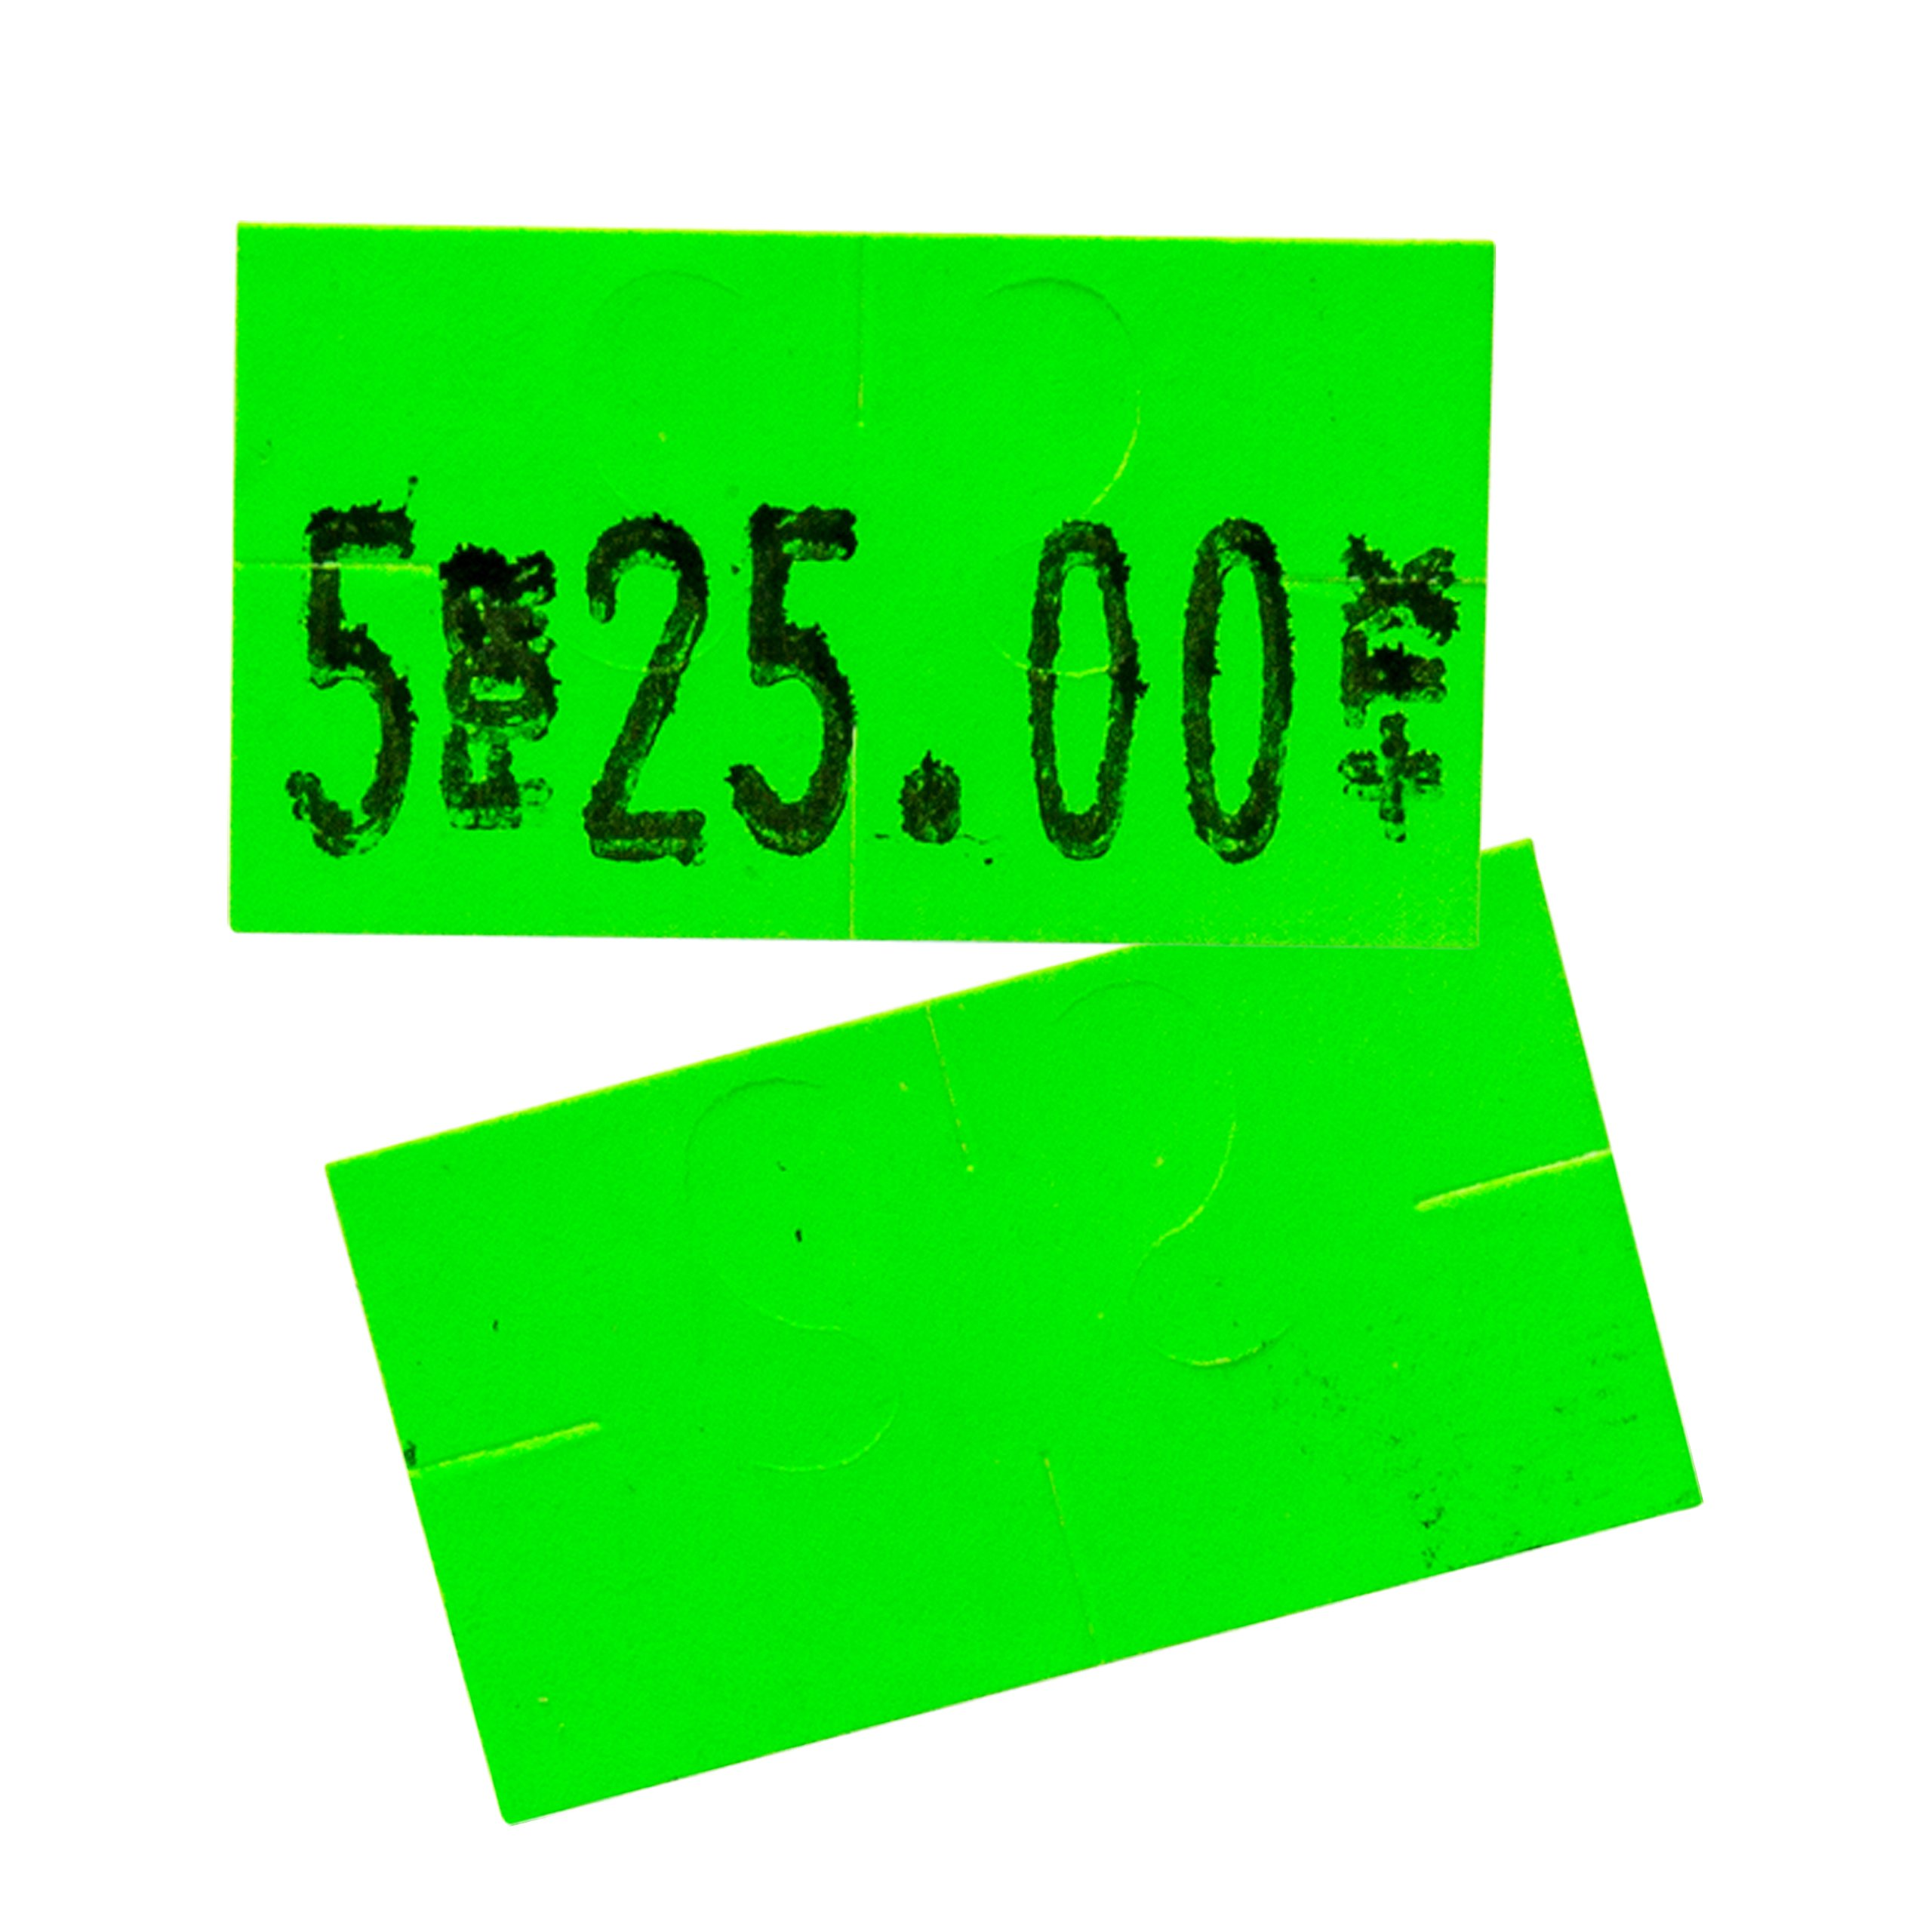 Flou. Green Pricing Labels for Monarch 1131 Price Gun - 1 Sleeve, 20,000 Price Gun Labels - with Bonus Ink Roll by Perco (Image #5)